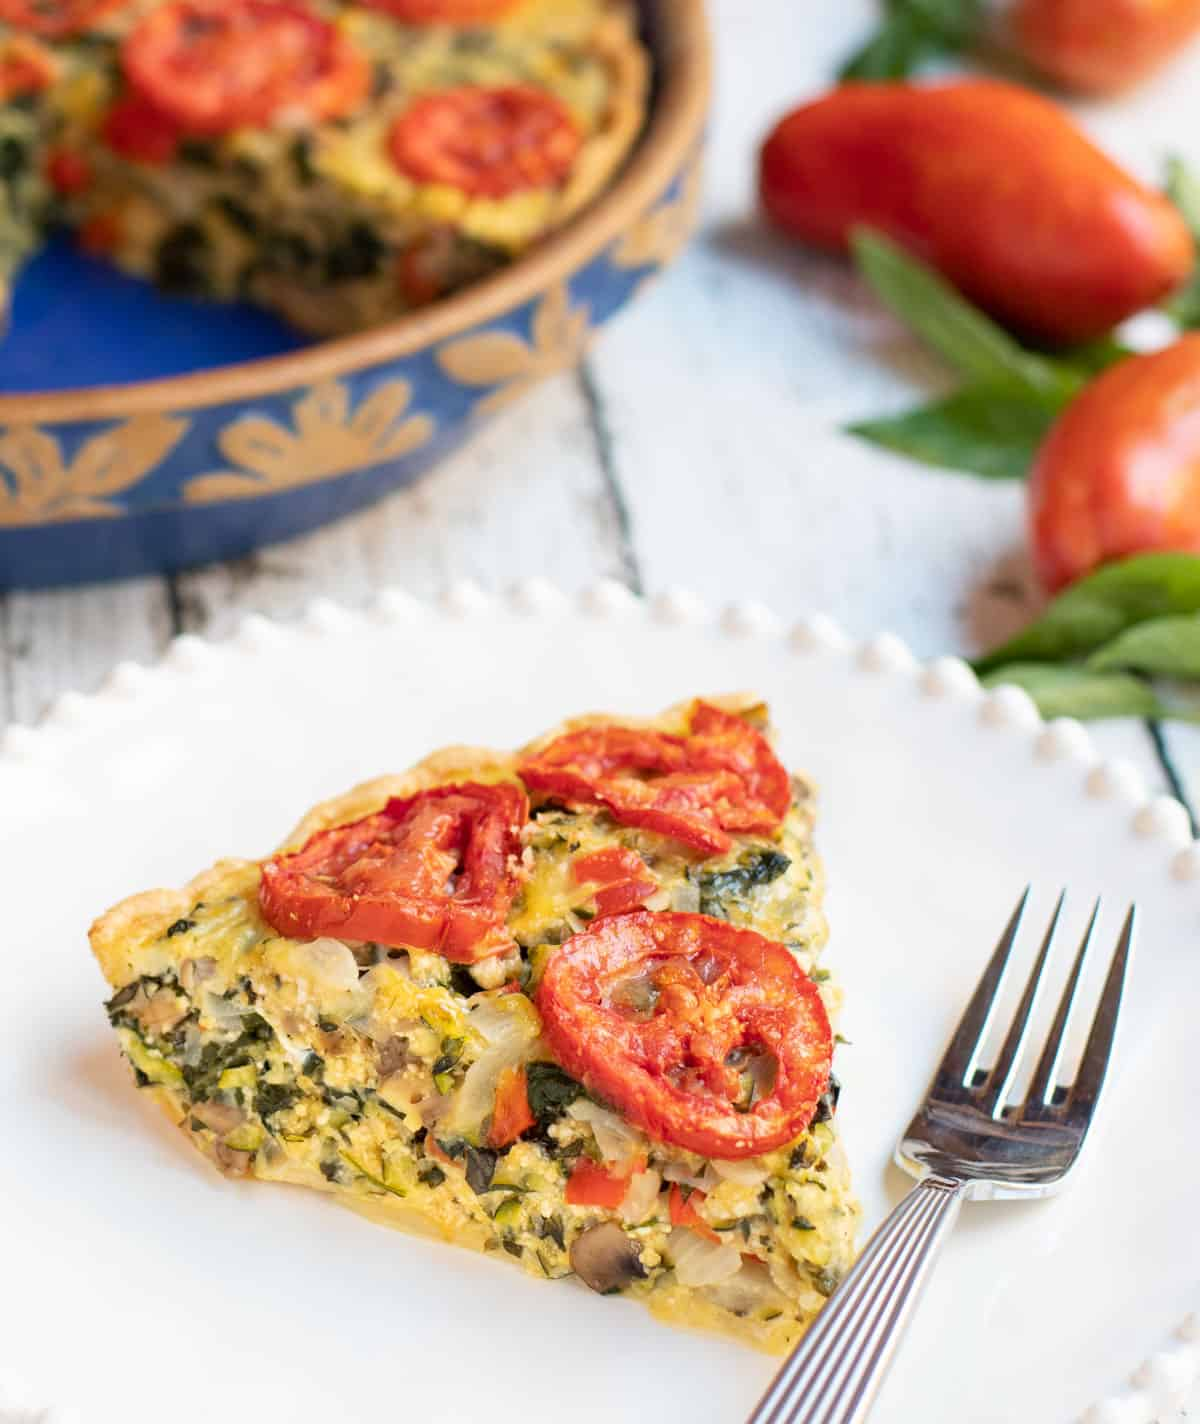 Slice of Mushroom, Spinach, Tomato and Zucchini Pie on a white plate